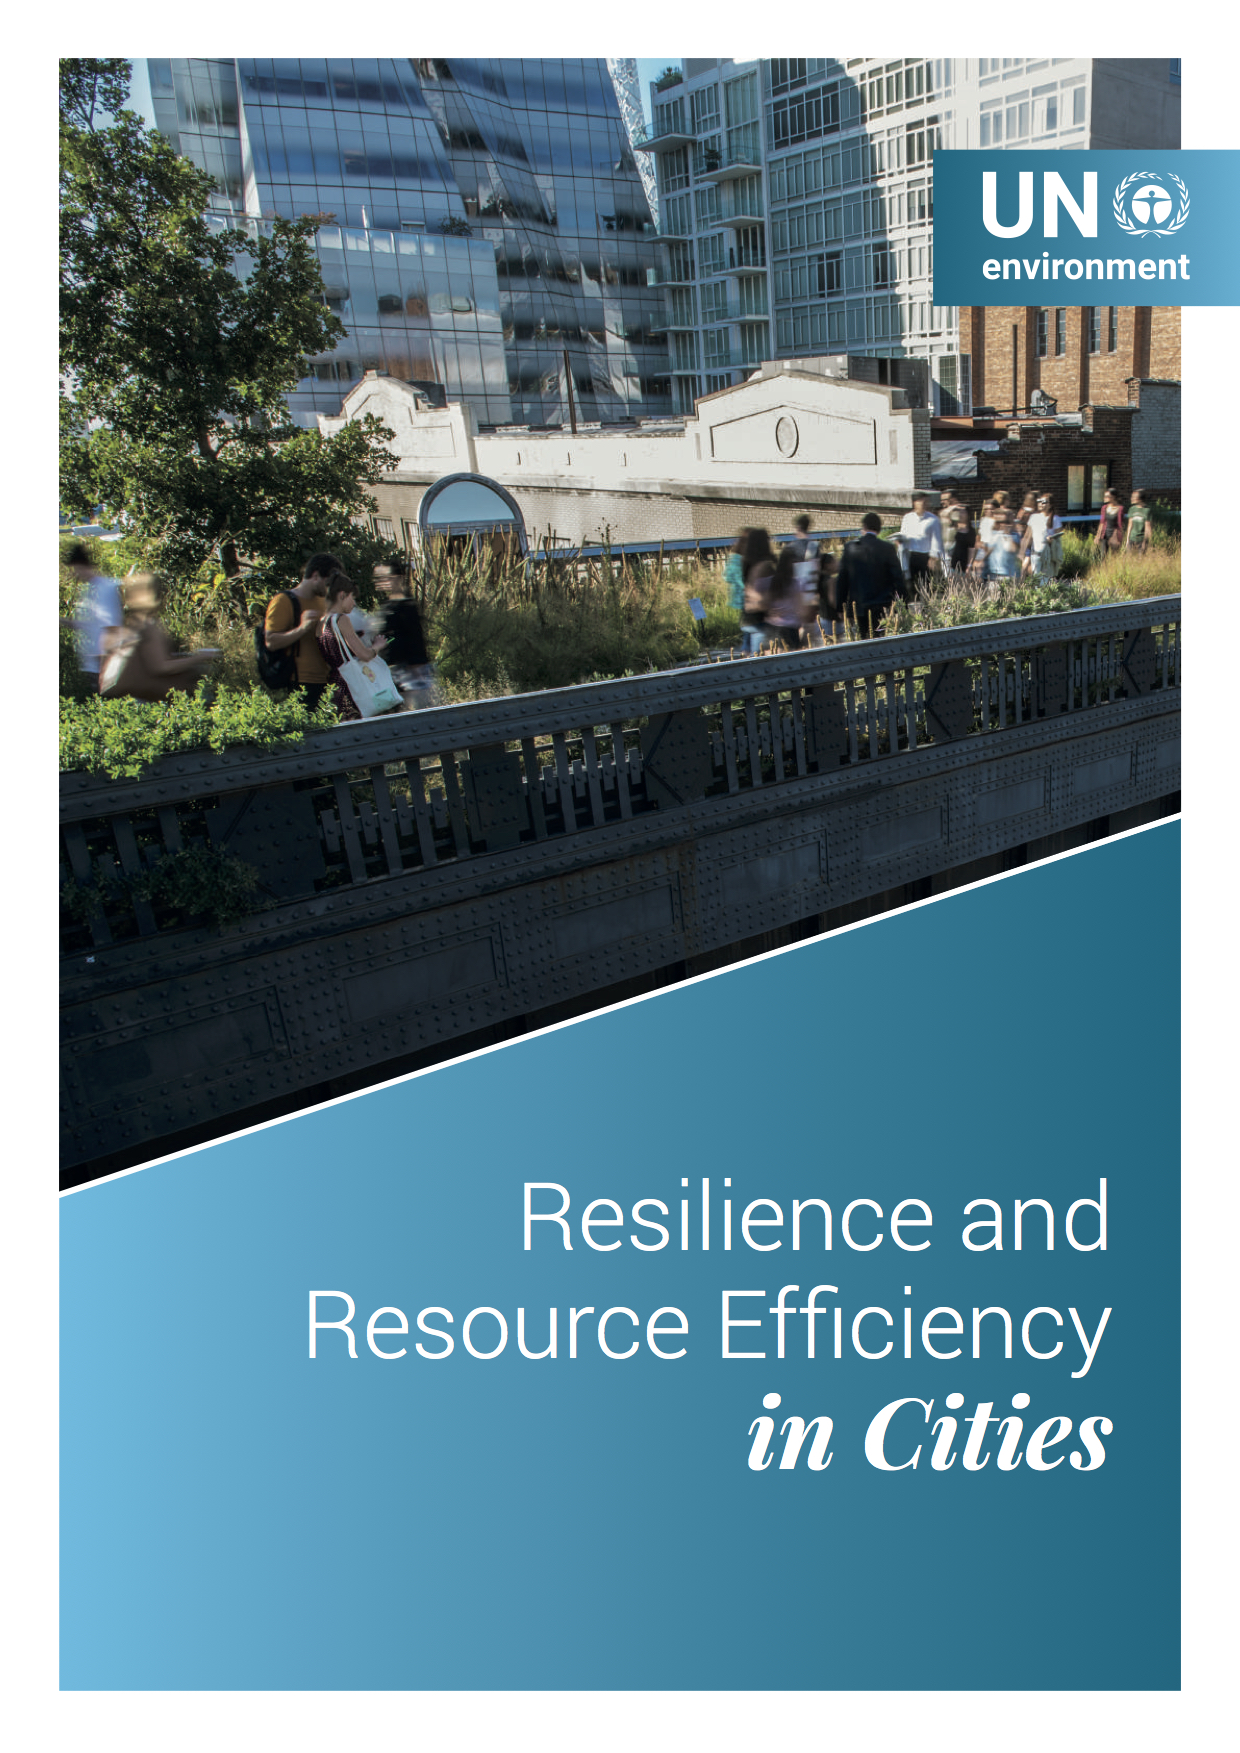 Resilience and Resource Efficiency in Cities thumbnail